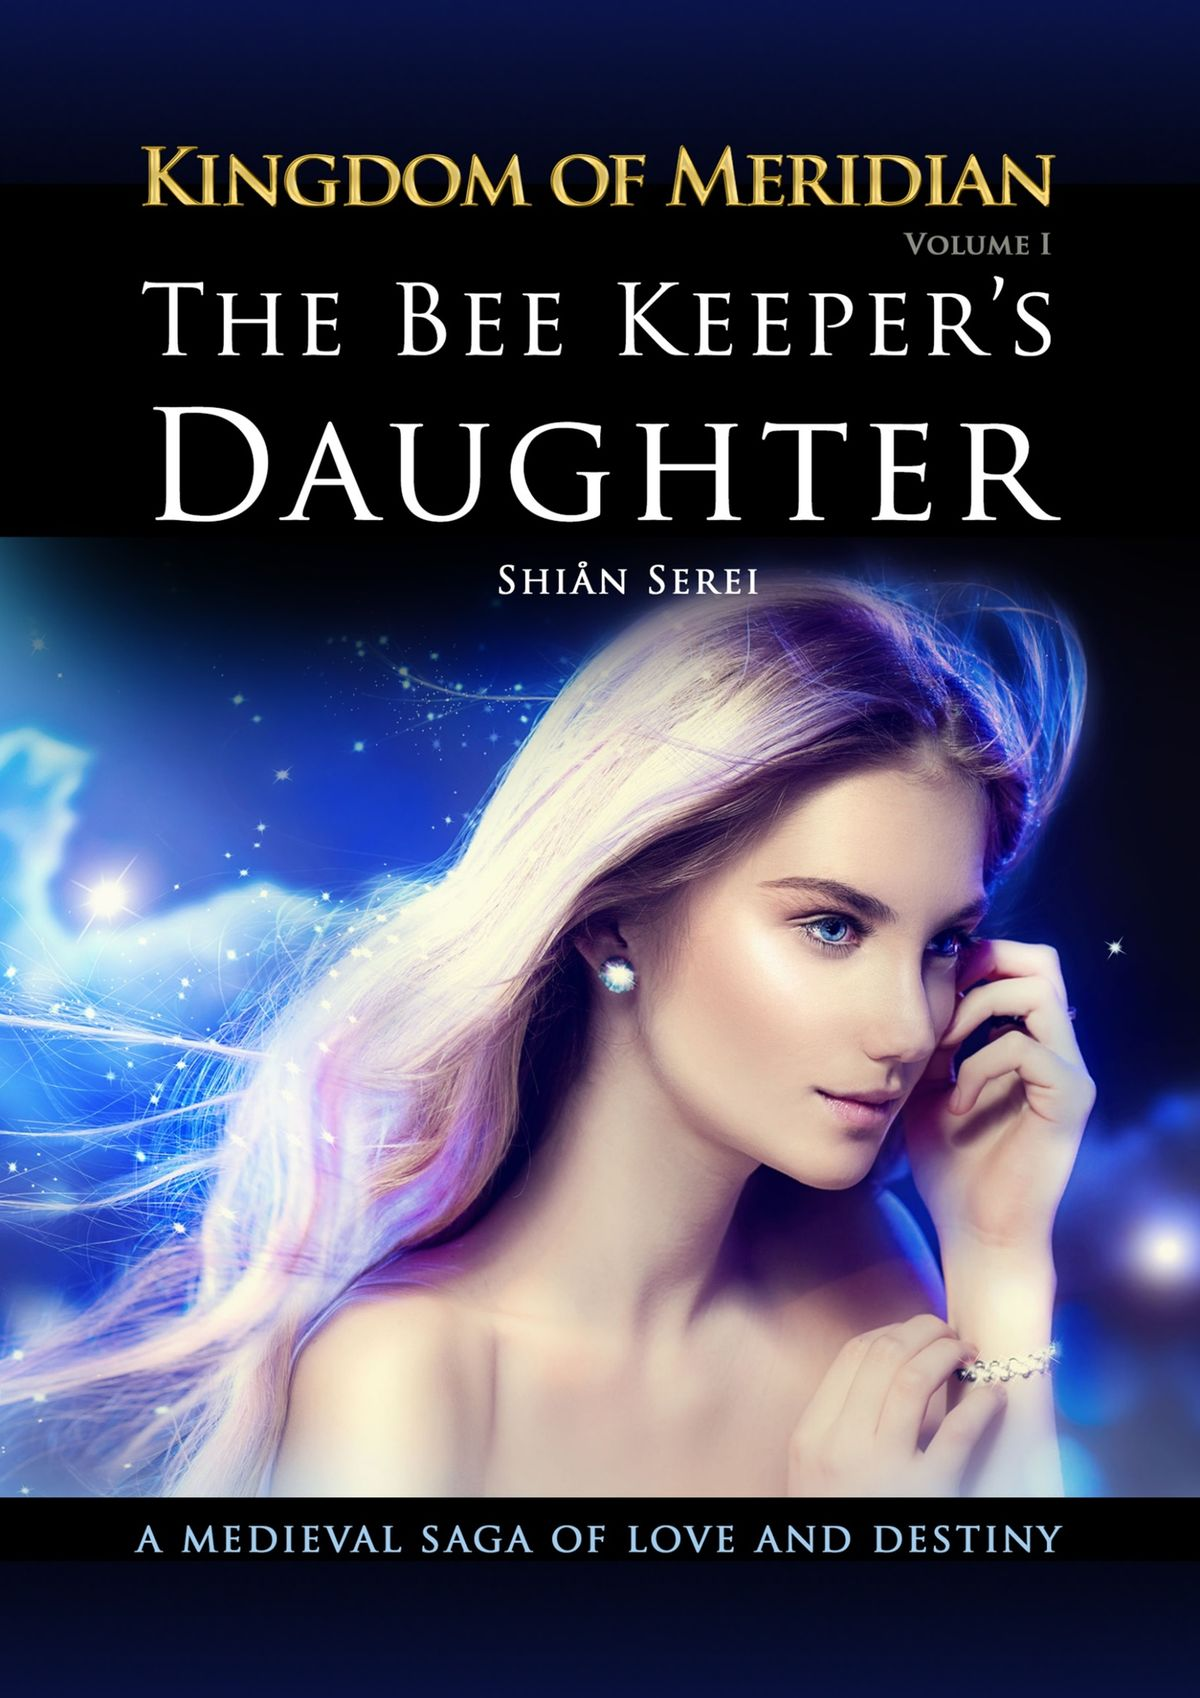 Shian Serei The Bee Keeper's Daughter. Kingdom of Meridian. Vol 1.